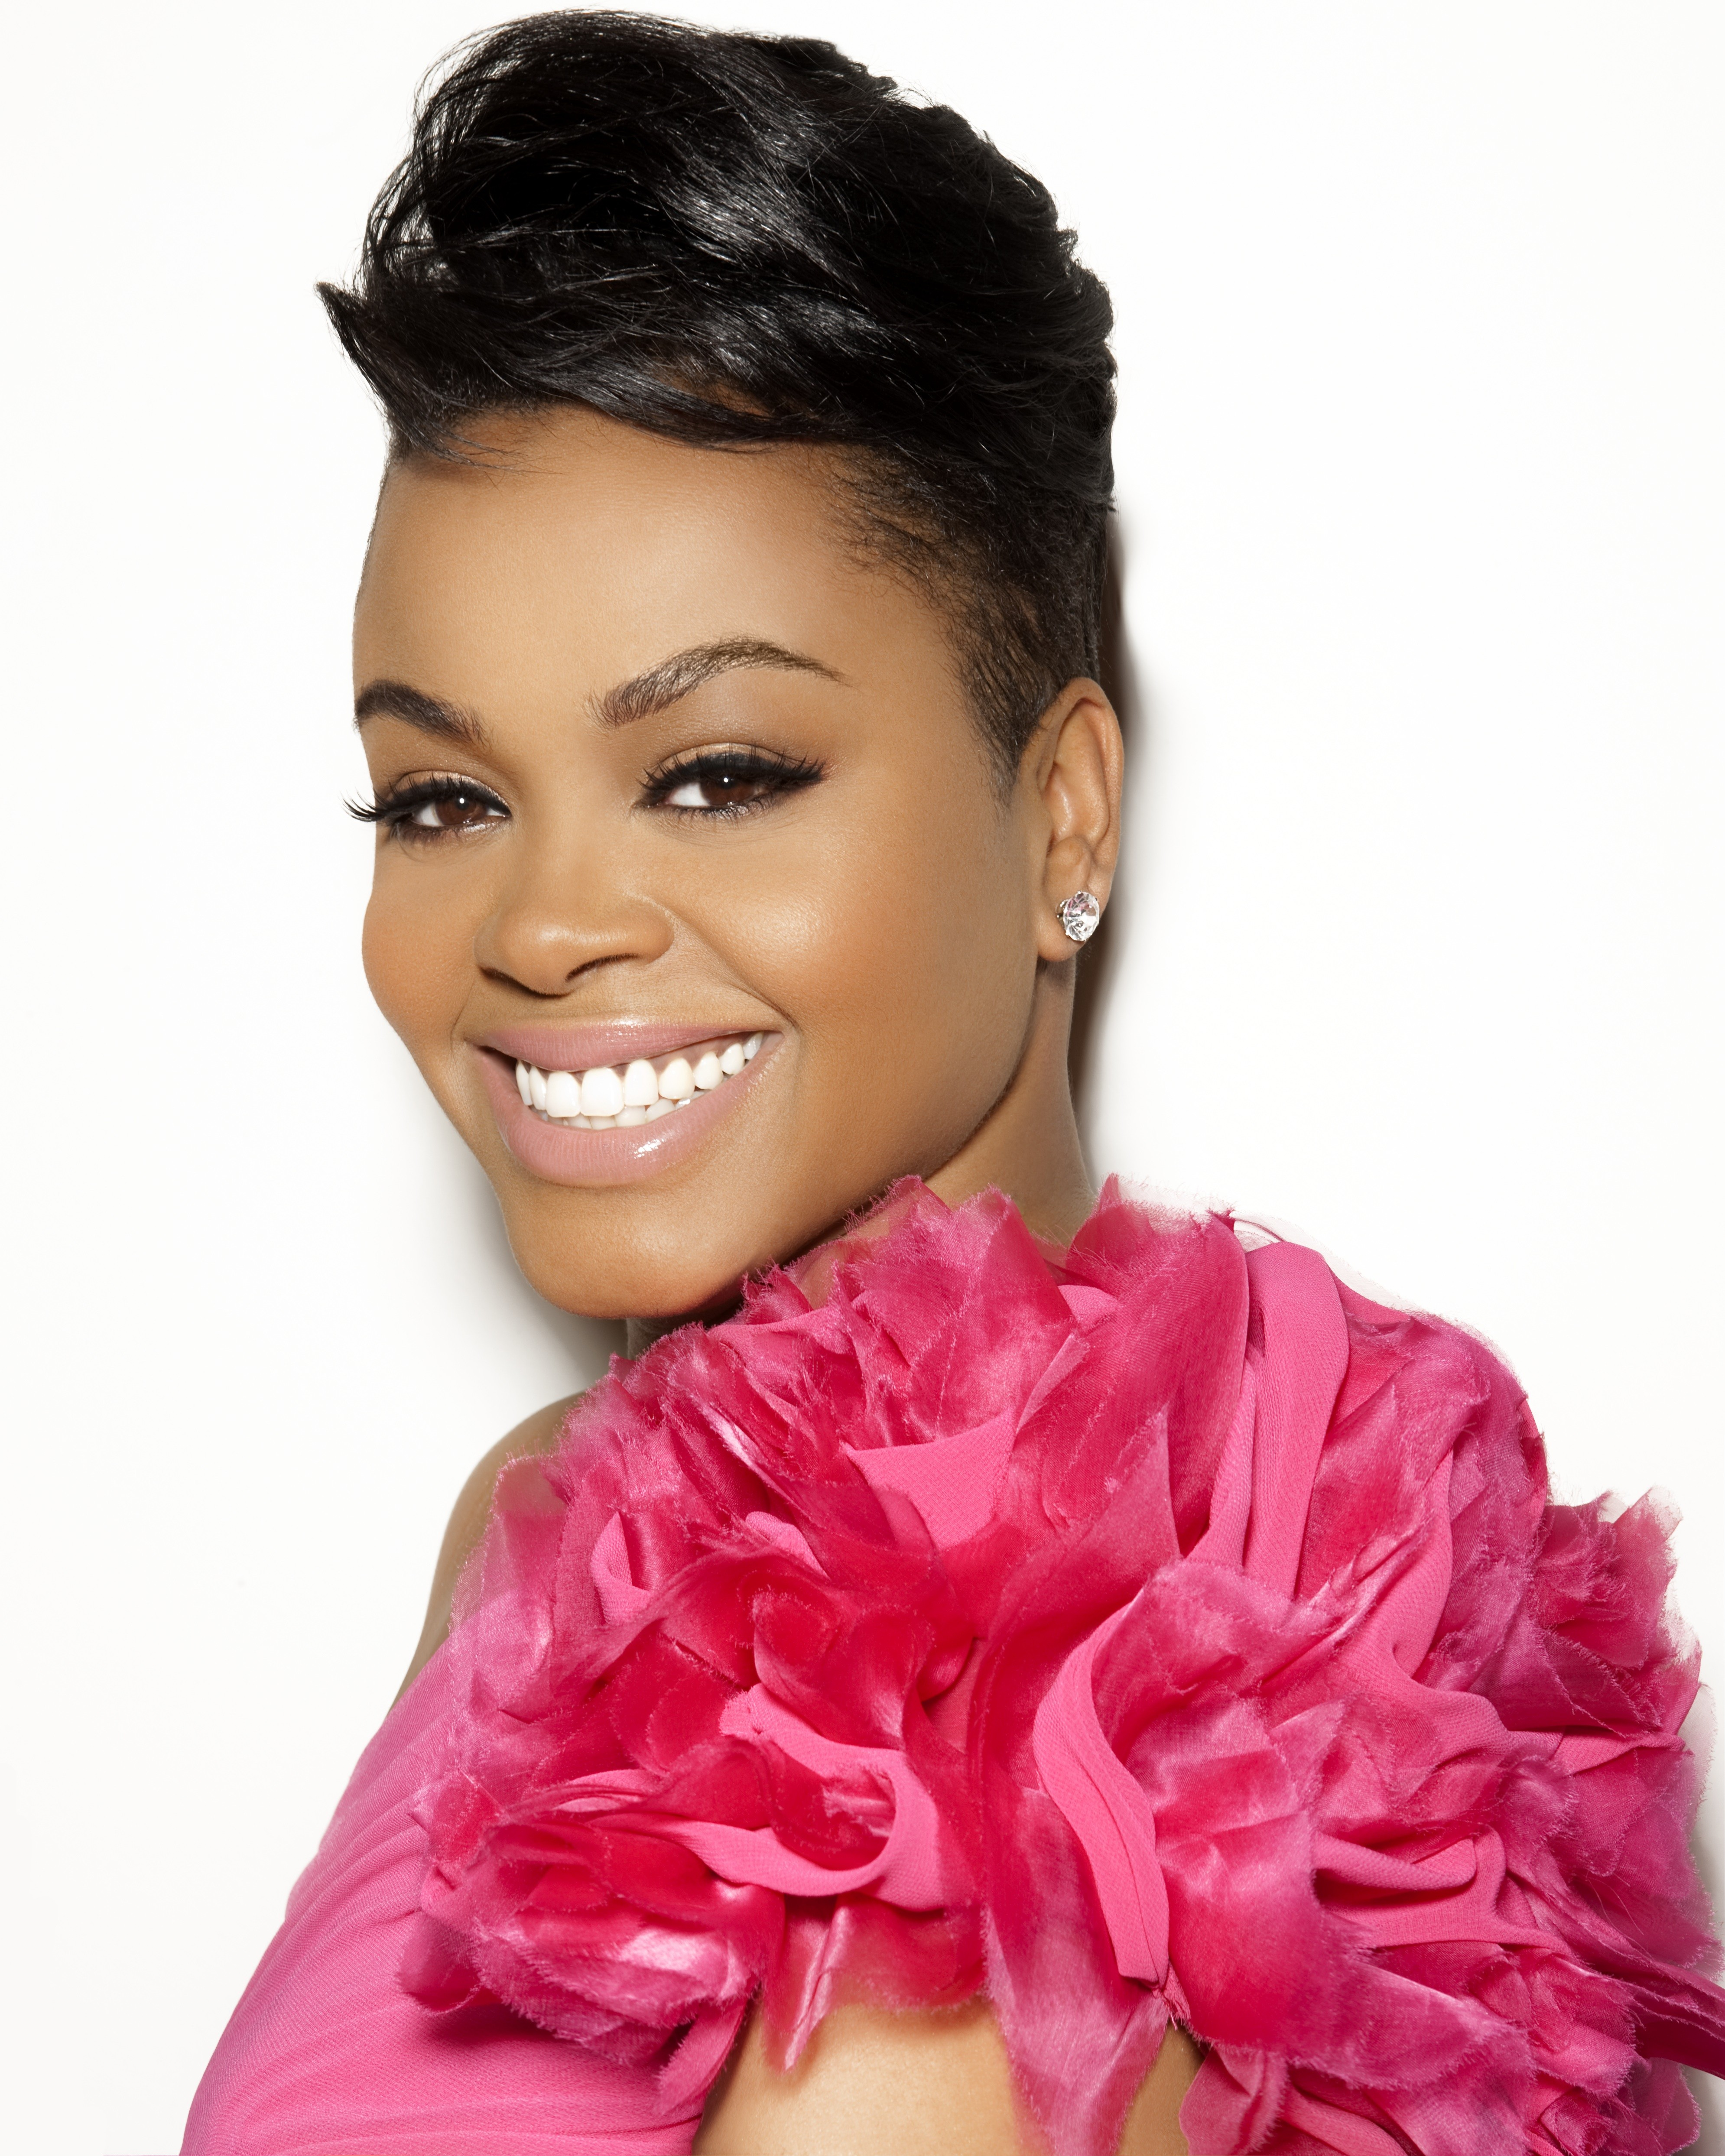 Images Jill Scott nudes (91 foto and video), Sexy, Fappening, Instagram, cameltoe 2020